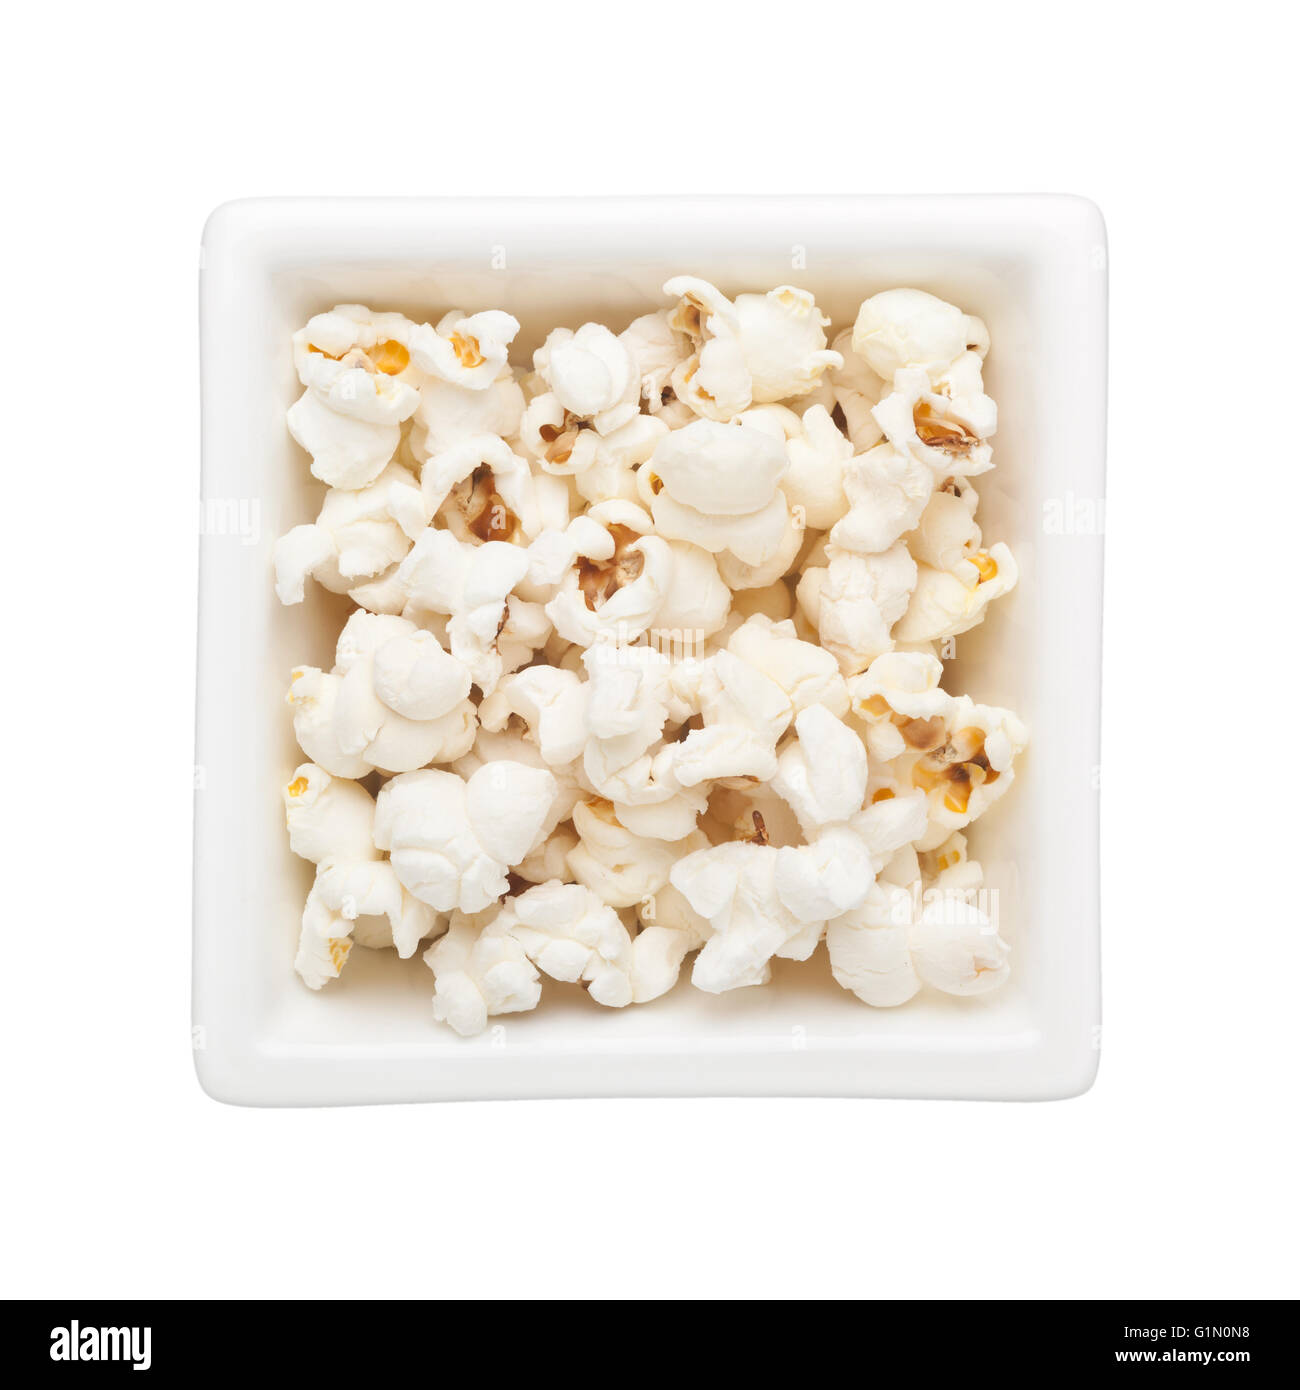 Plain popcorn in a square bowl isolated on white background - Stock Image